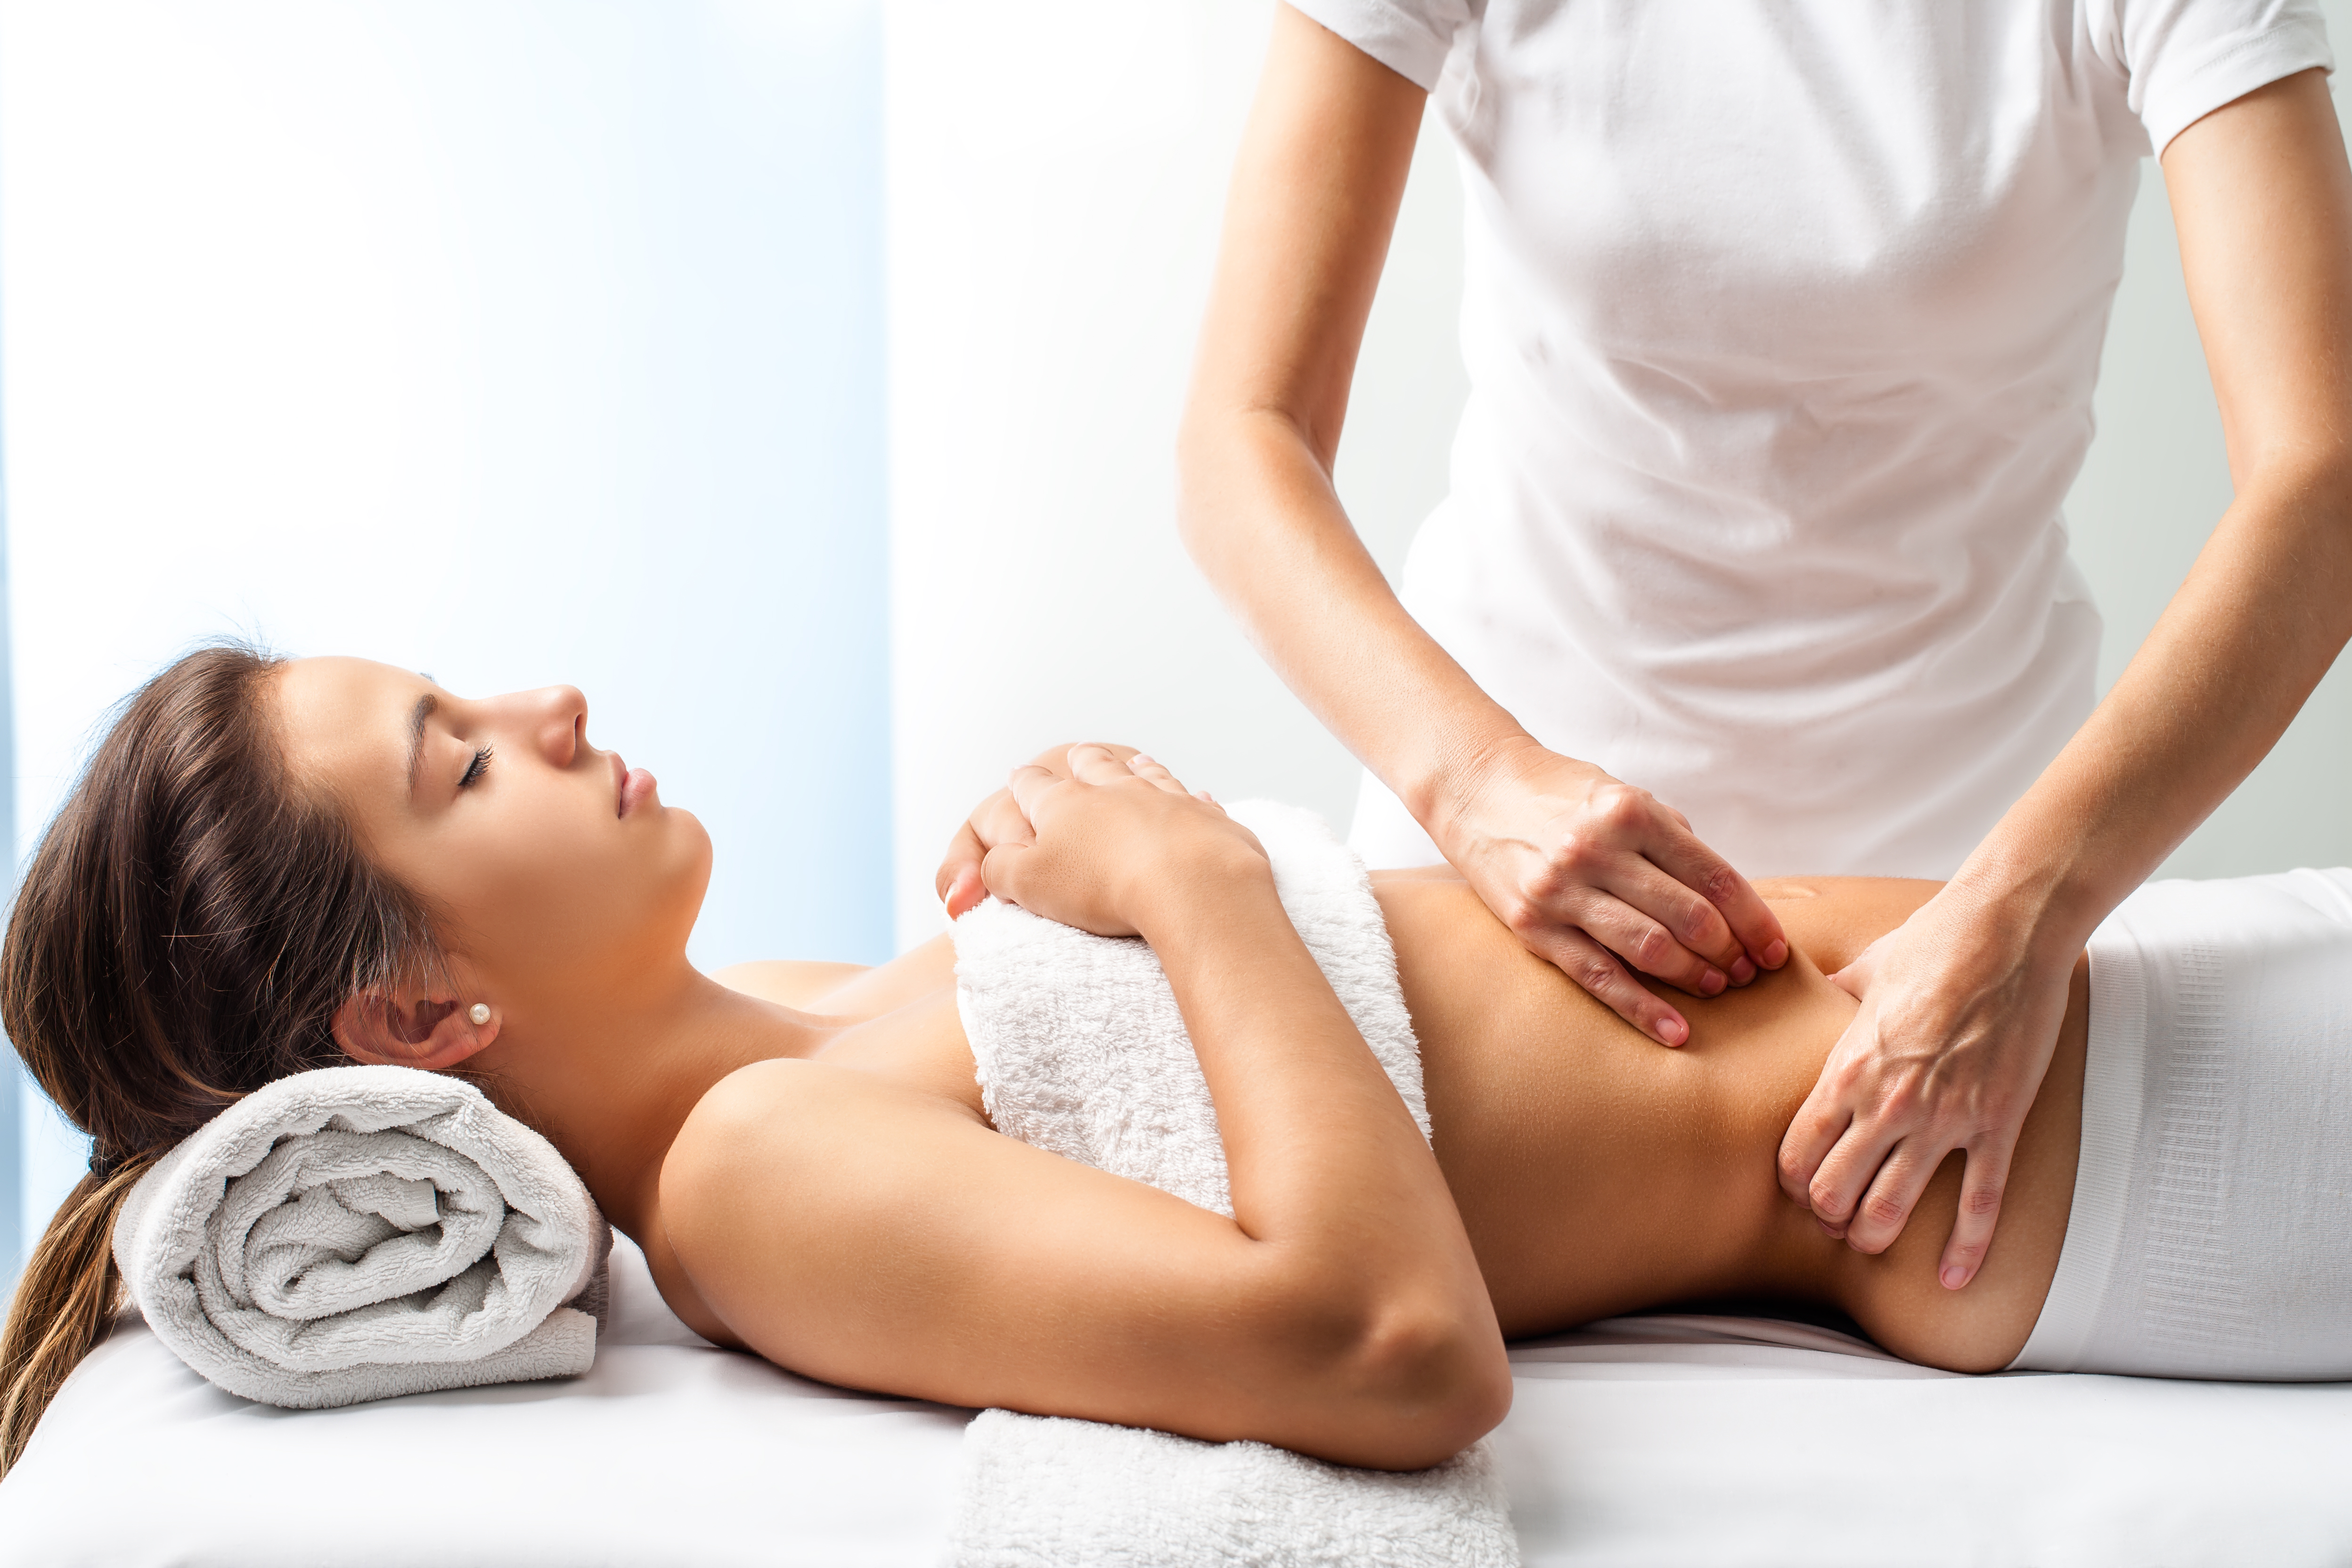 Therapist doing healing massage on female abdomen